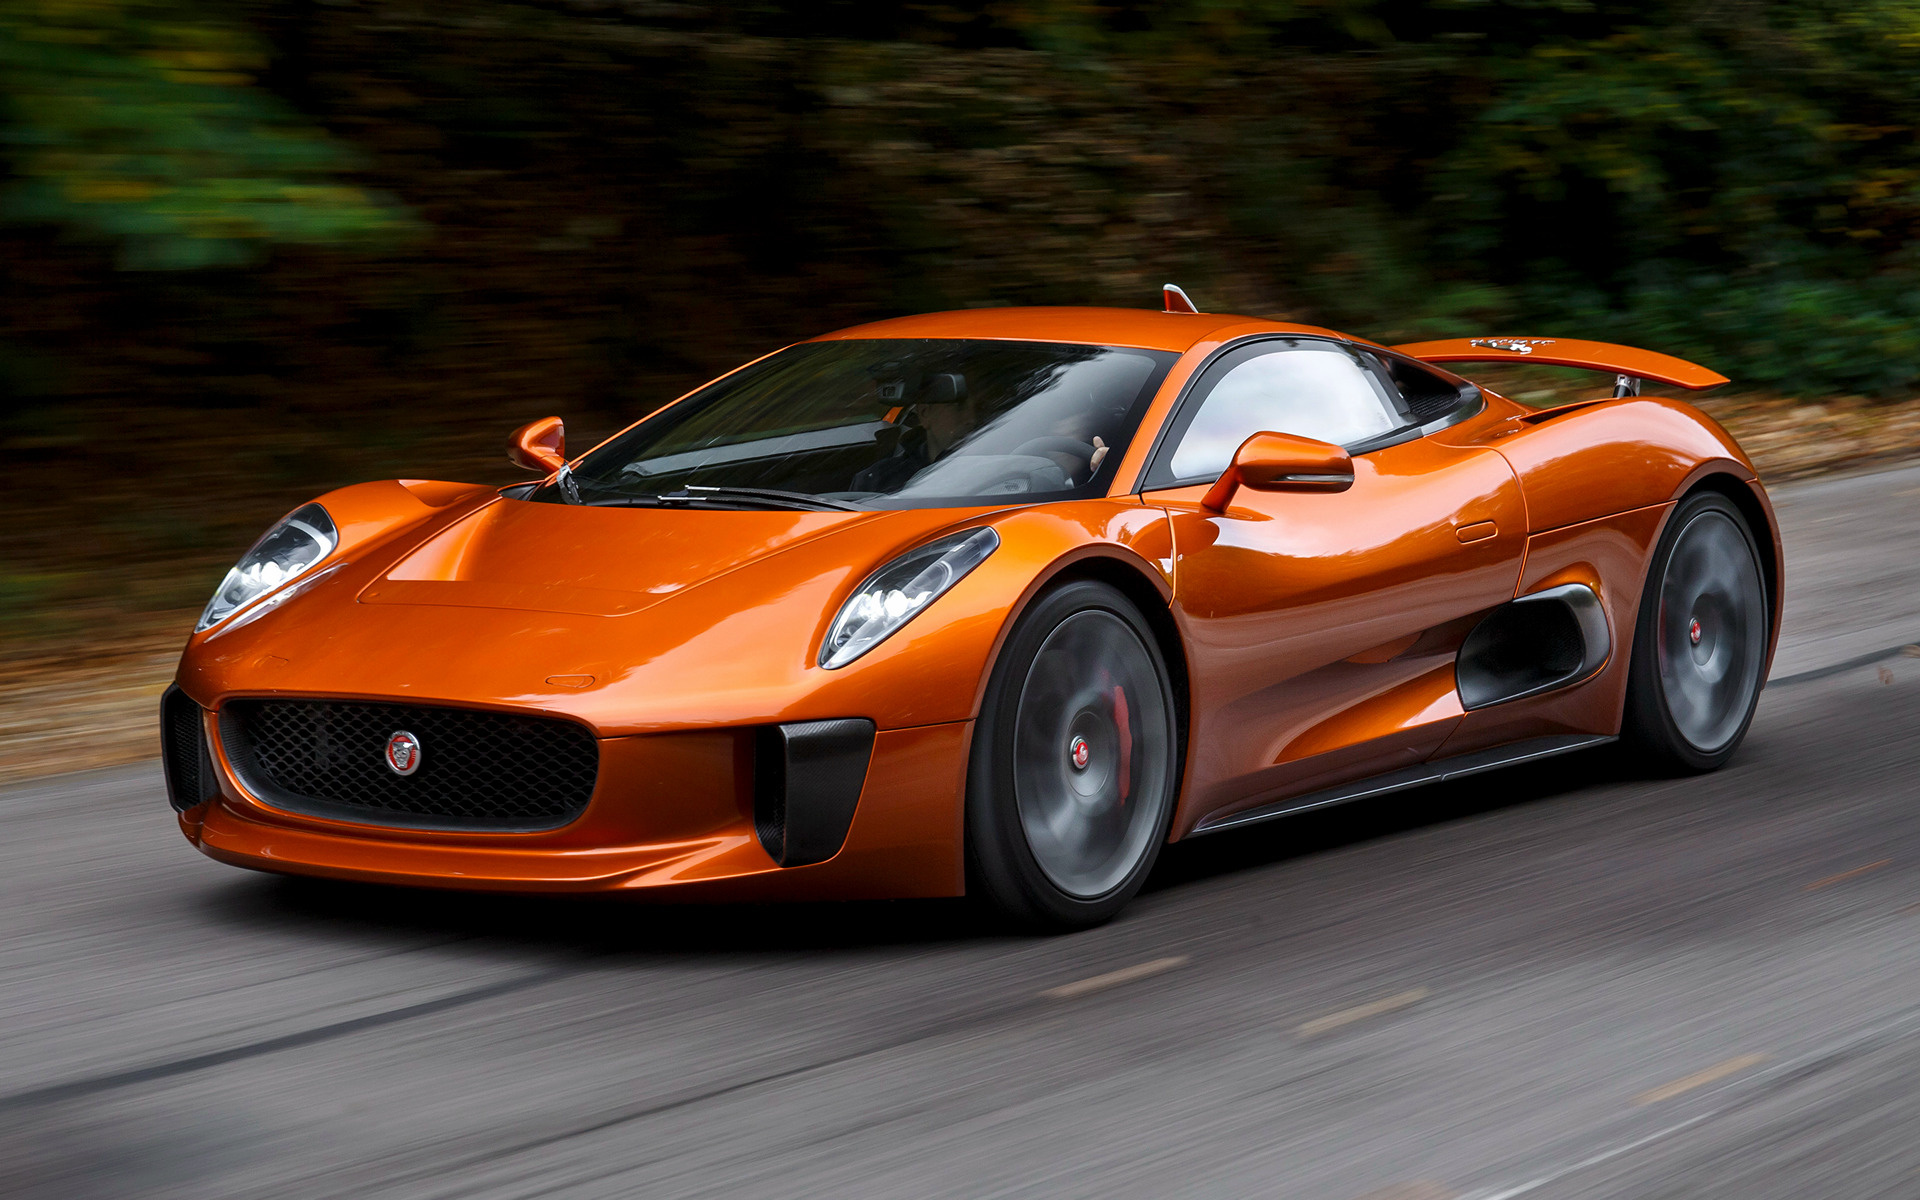 Jaguar C X75 007 Spectre 2015 Wallpapers And Hd Images